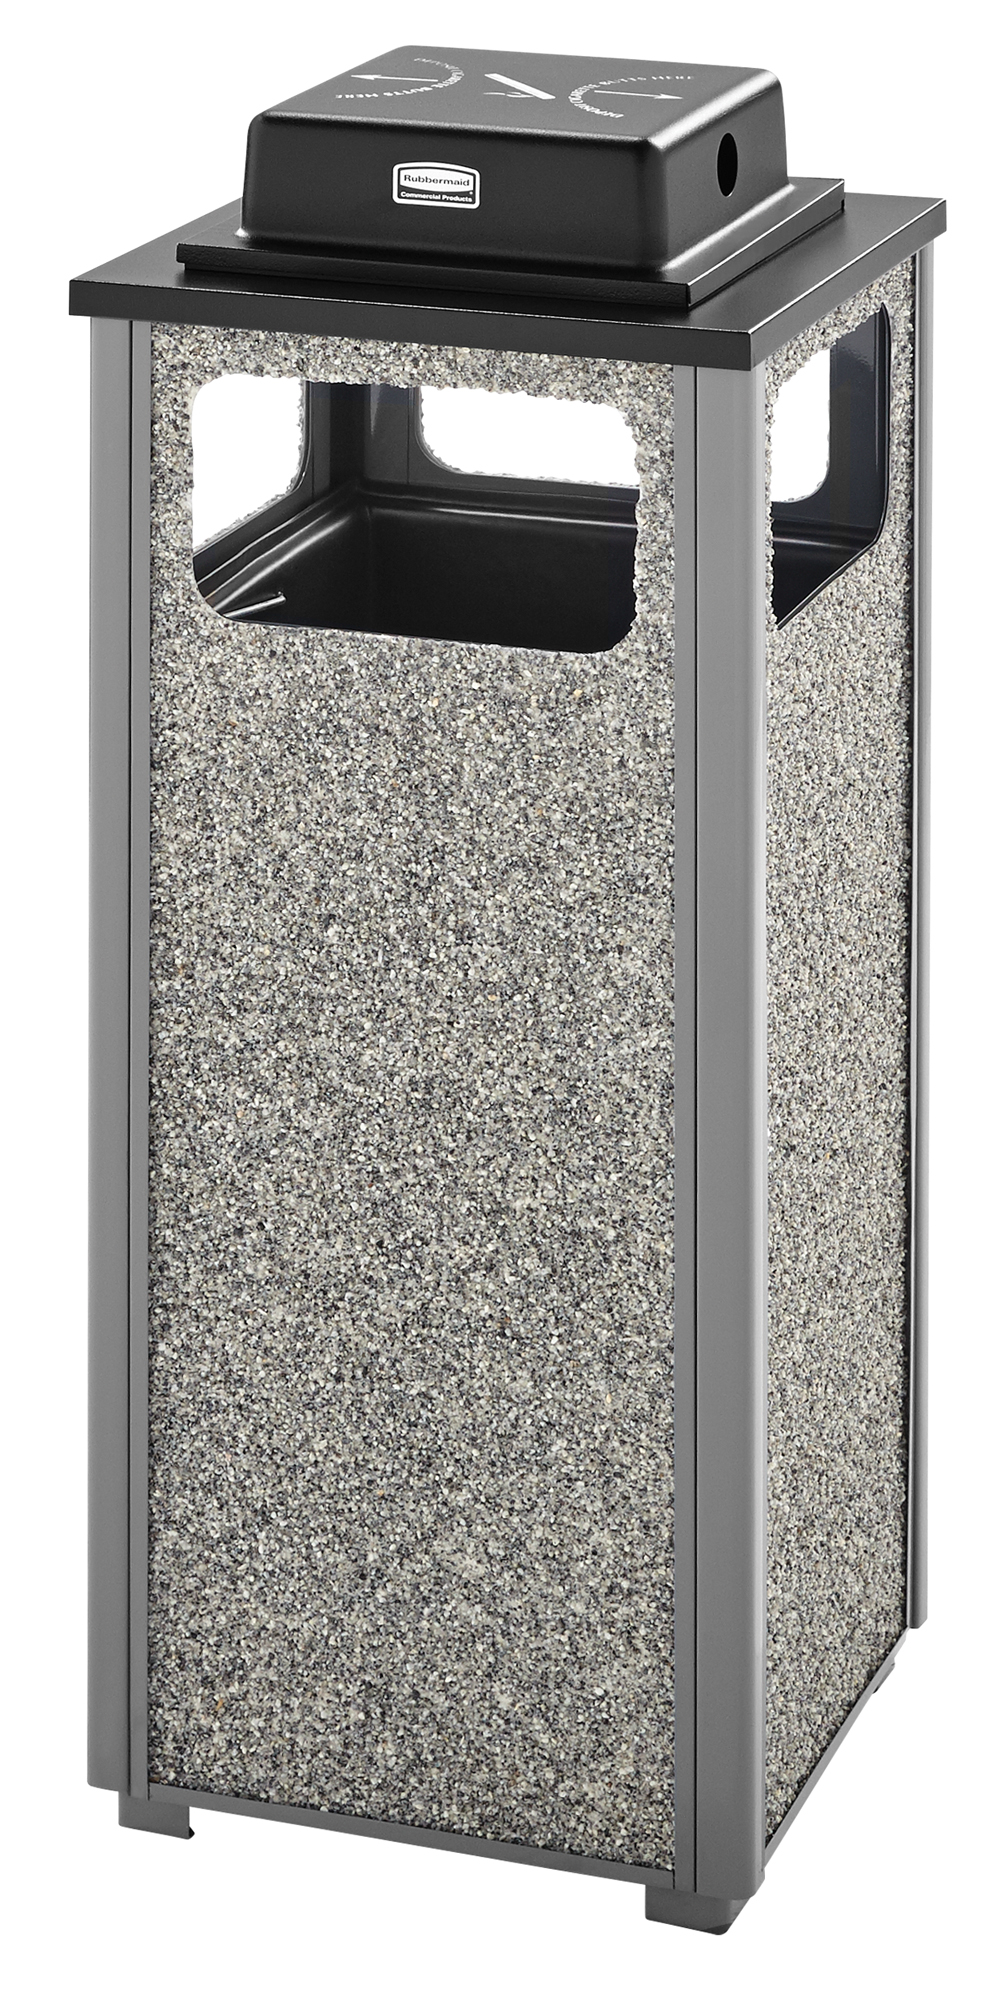 Aspen Series 12 Gallon Ash/Trash Receptacle with Weather Urn Top